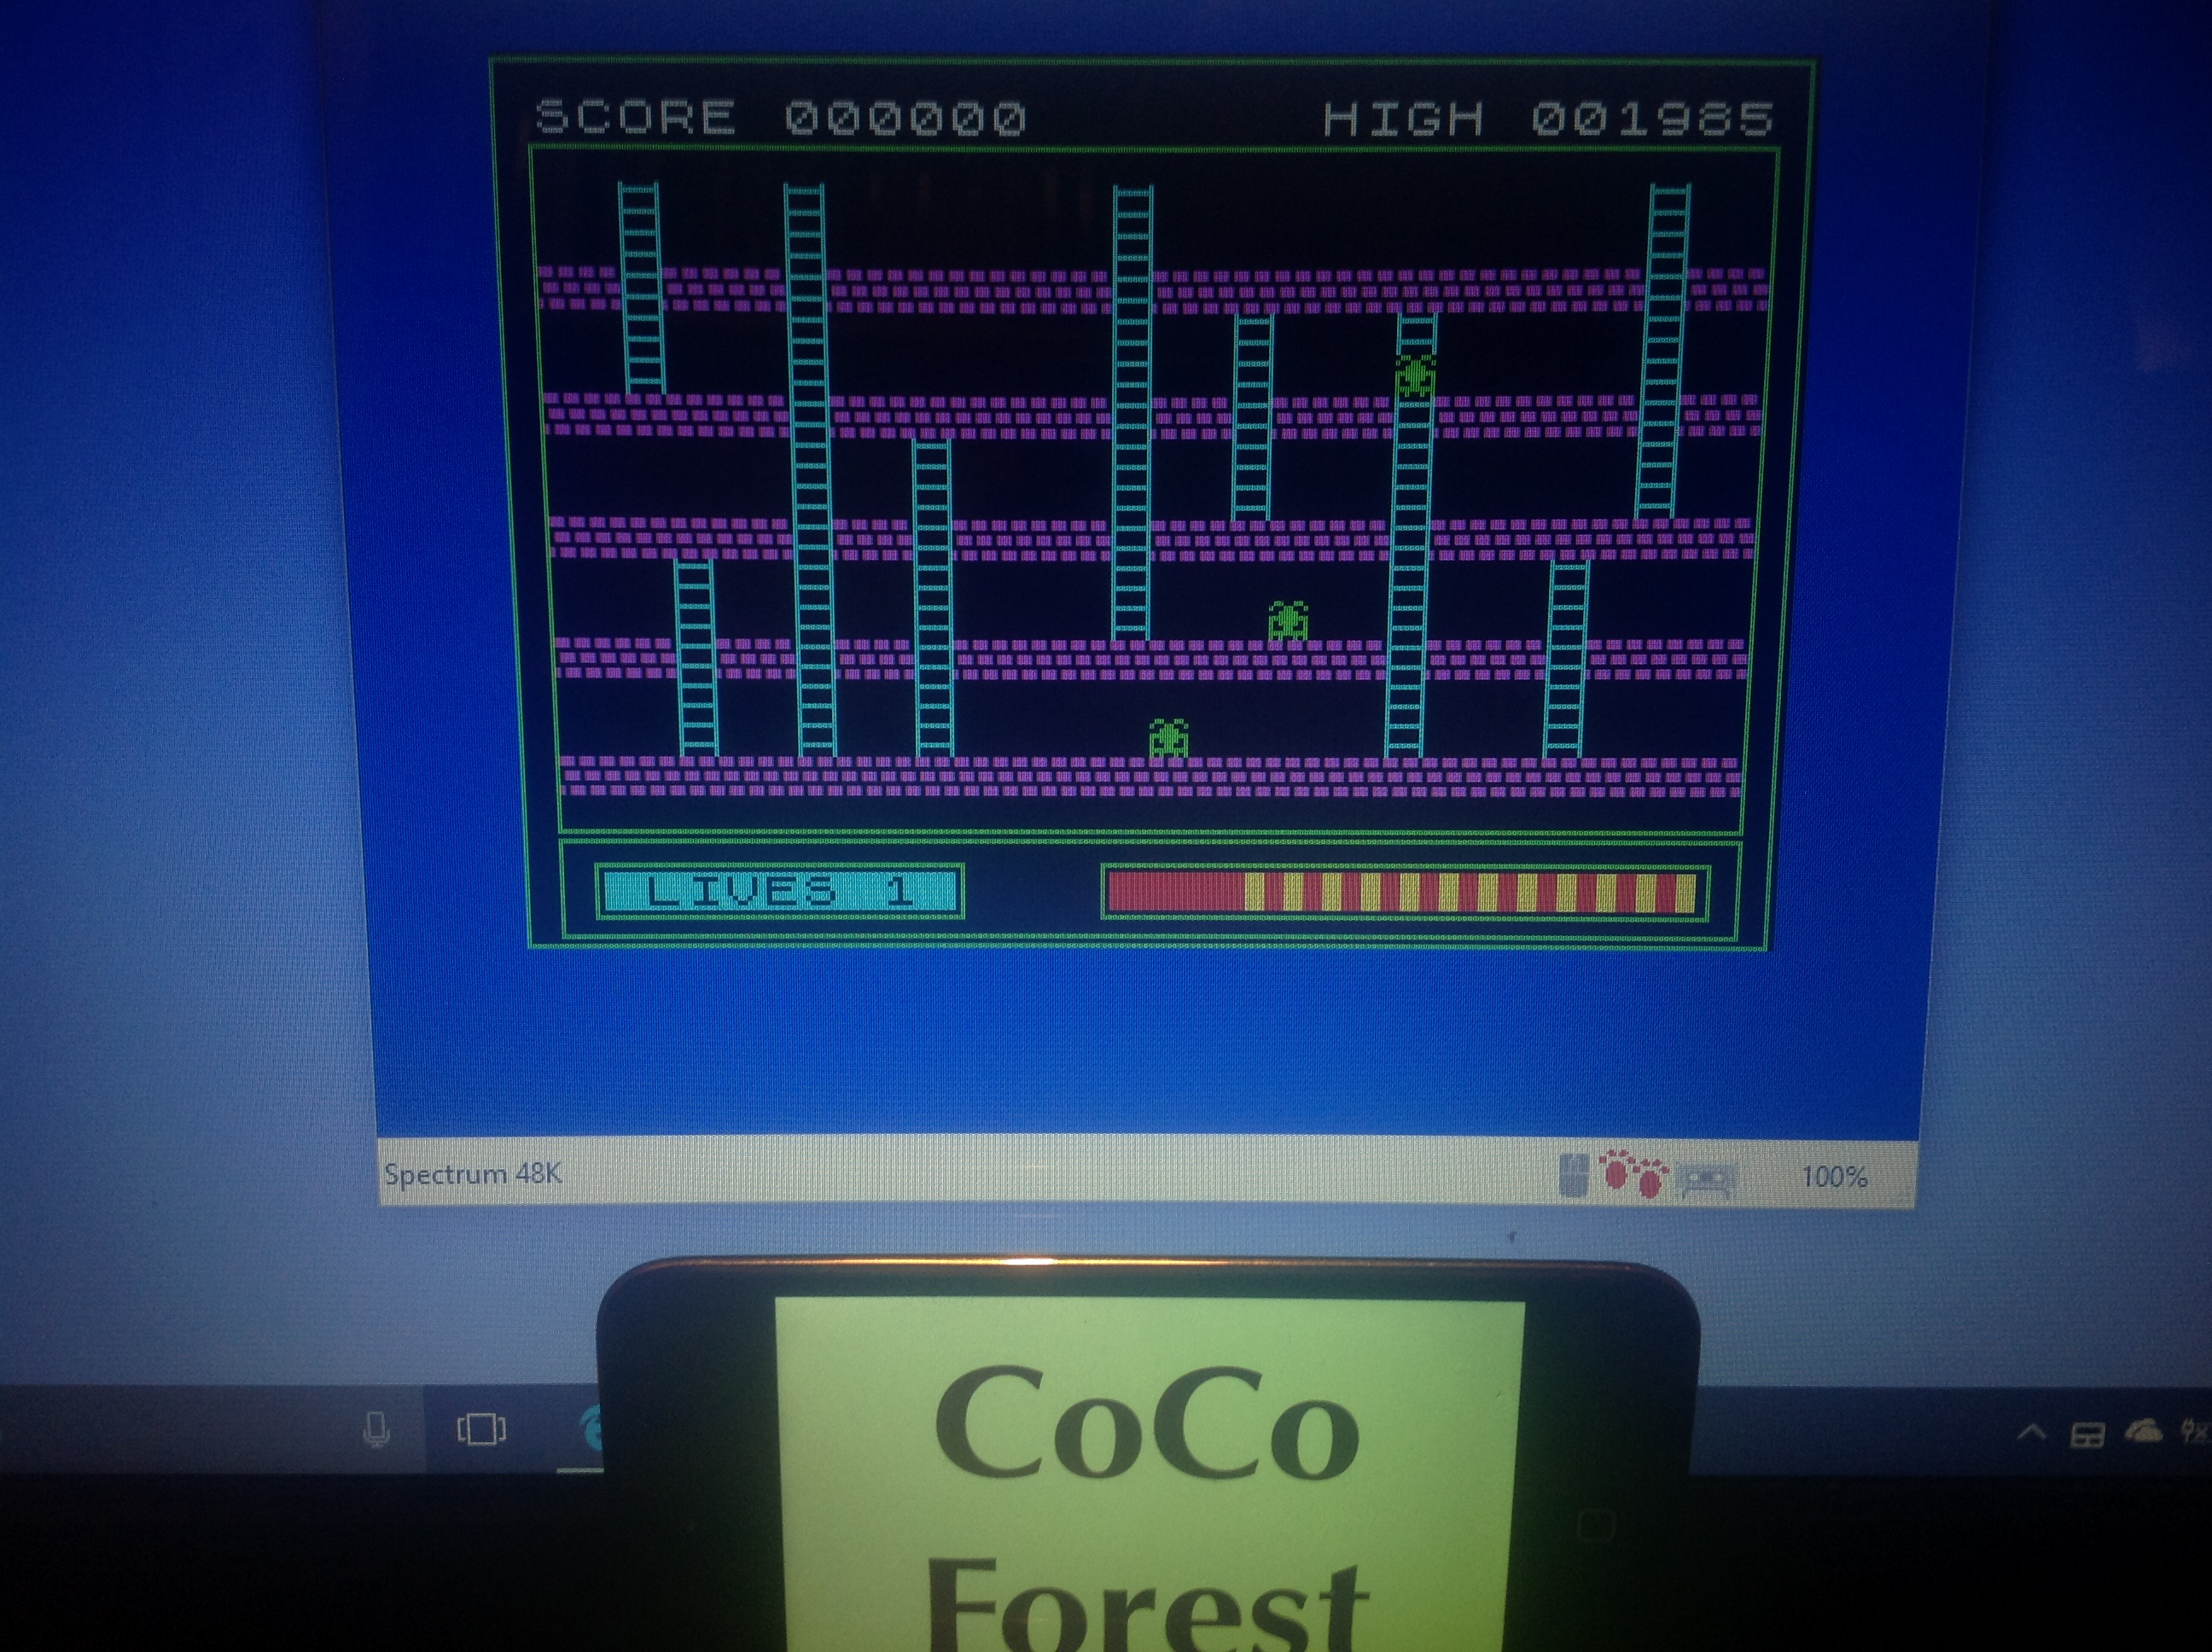 CoCoForest: Buriabeast [Speed: 1] (ZX Spectrum Emulated) 1,985 points on 2018-01-18 13:35:23